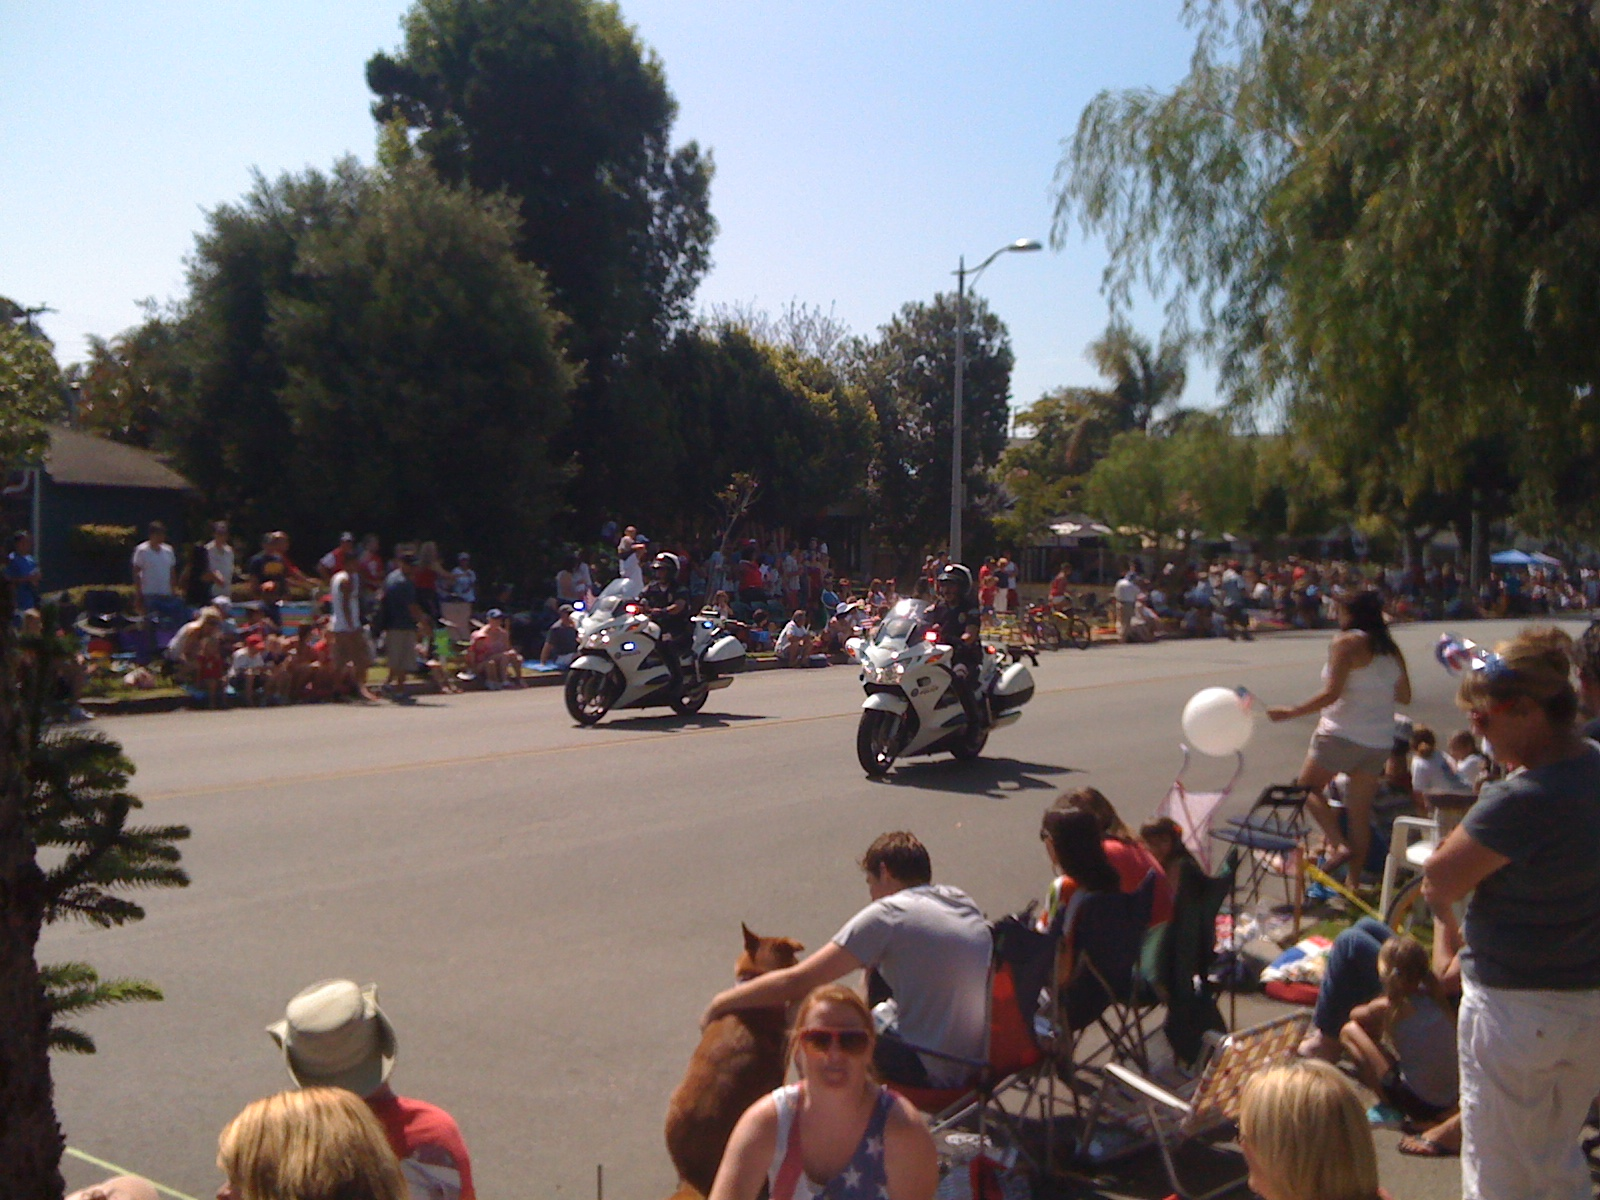 Enjoy the Huntington Beach 4th of July Parade!!